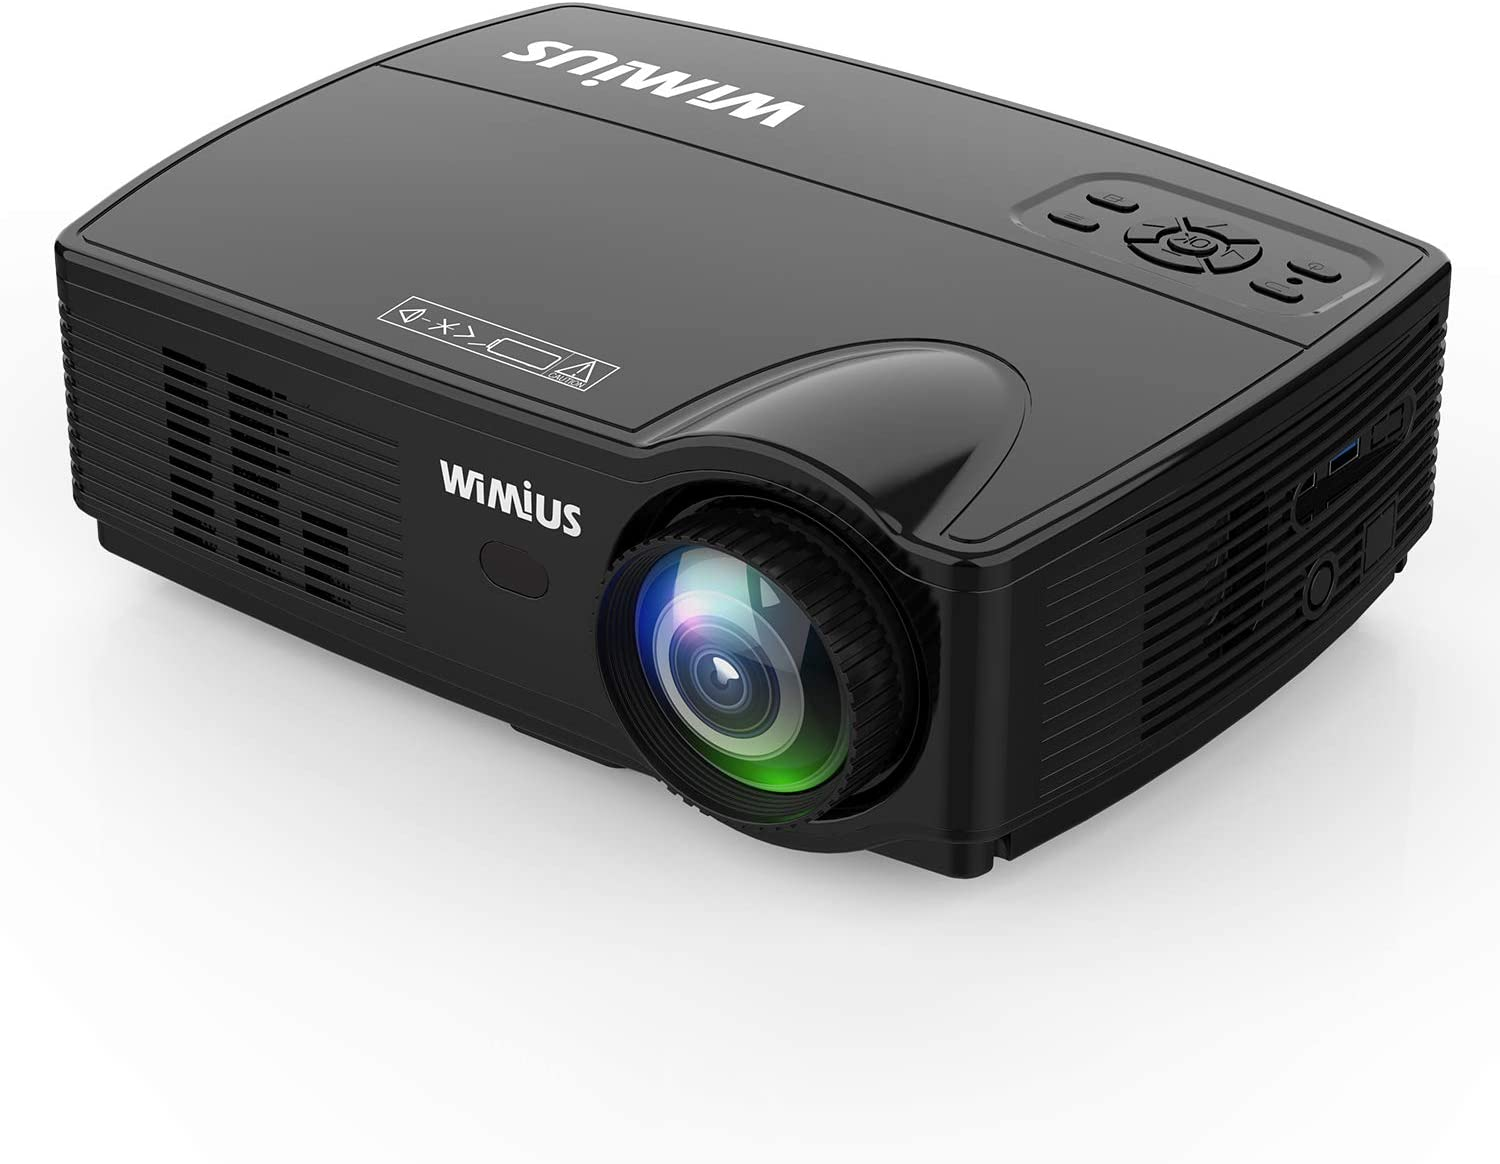 6. WiMius LED 1080p Projector